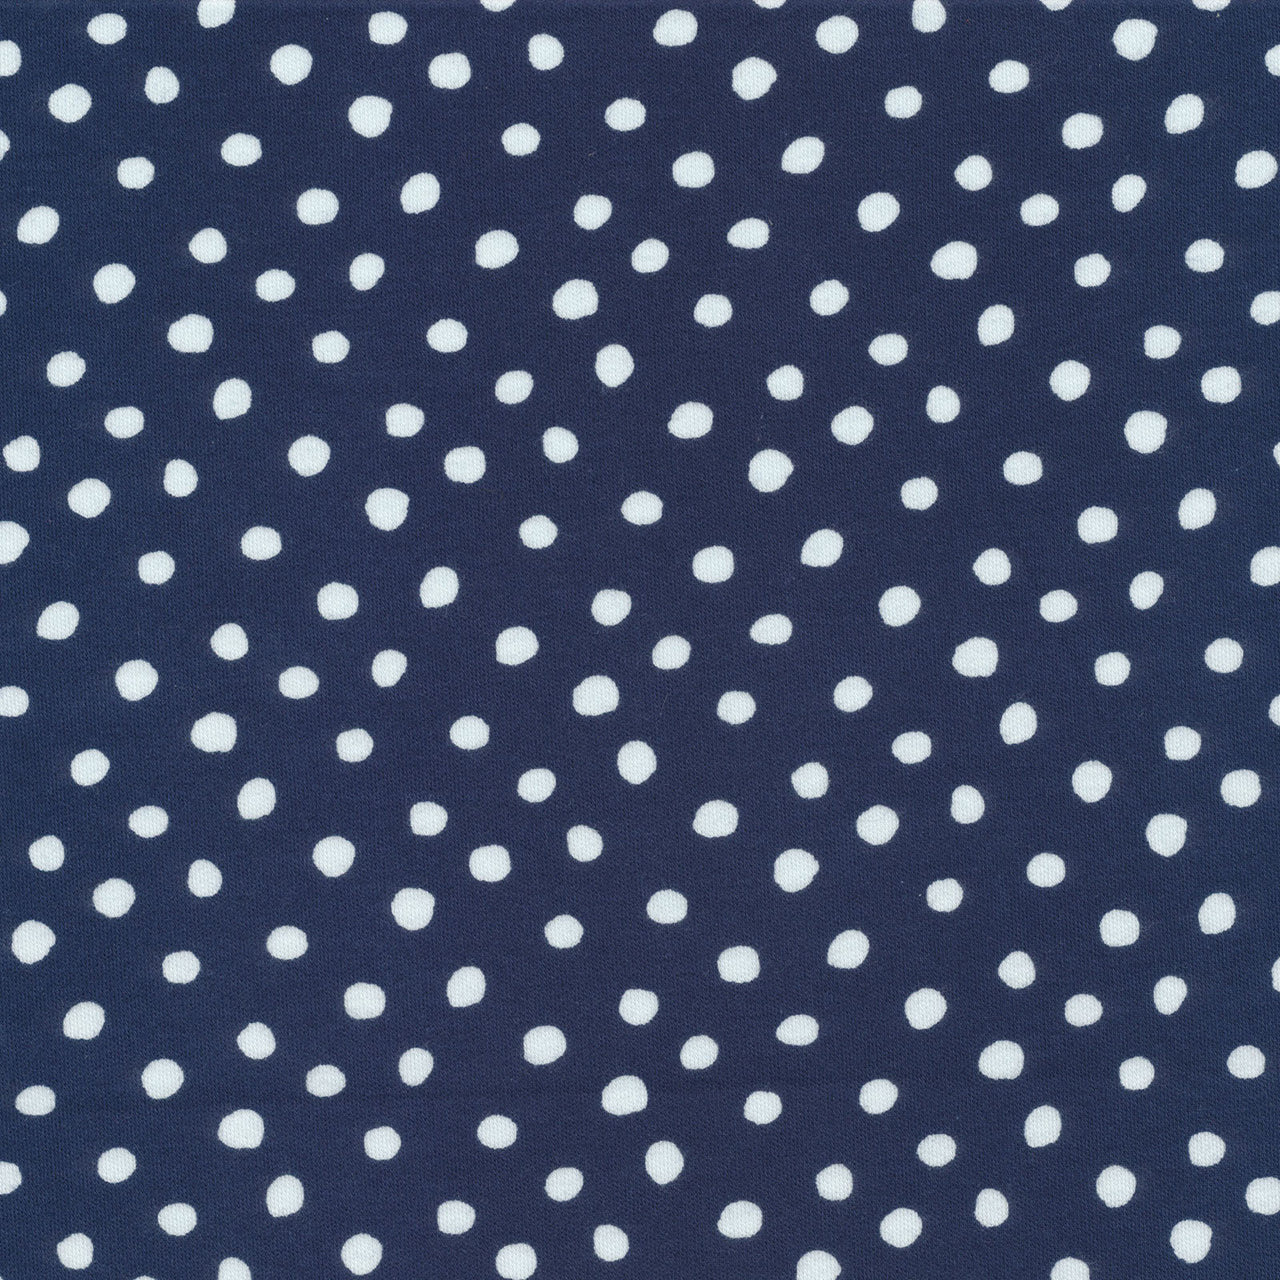 Knits by Jessica Jones : Dots in Navy : Cloud 9